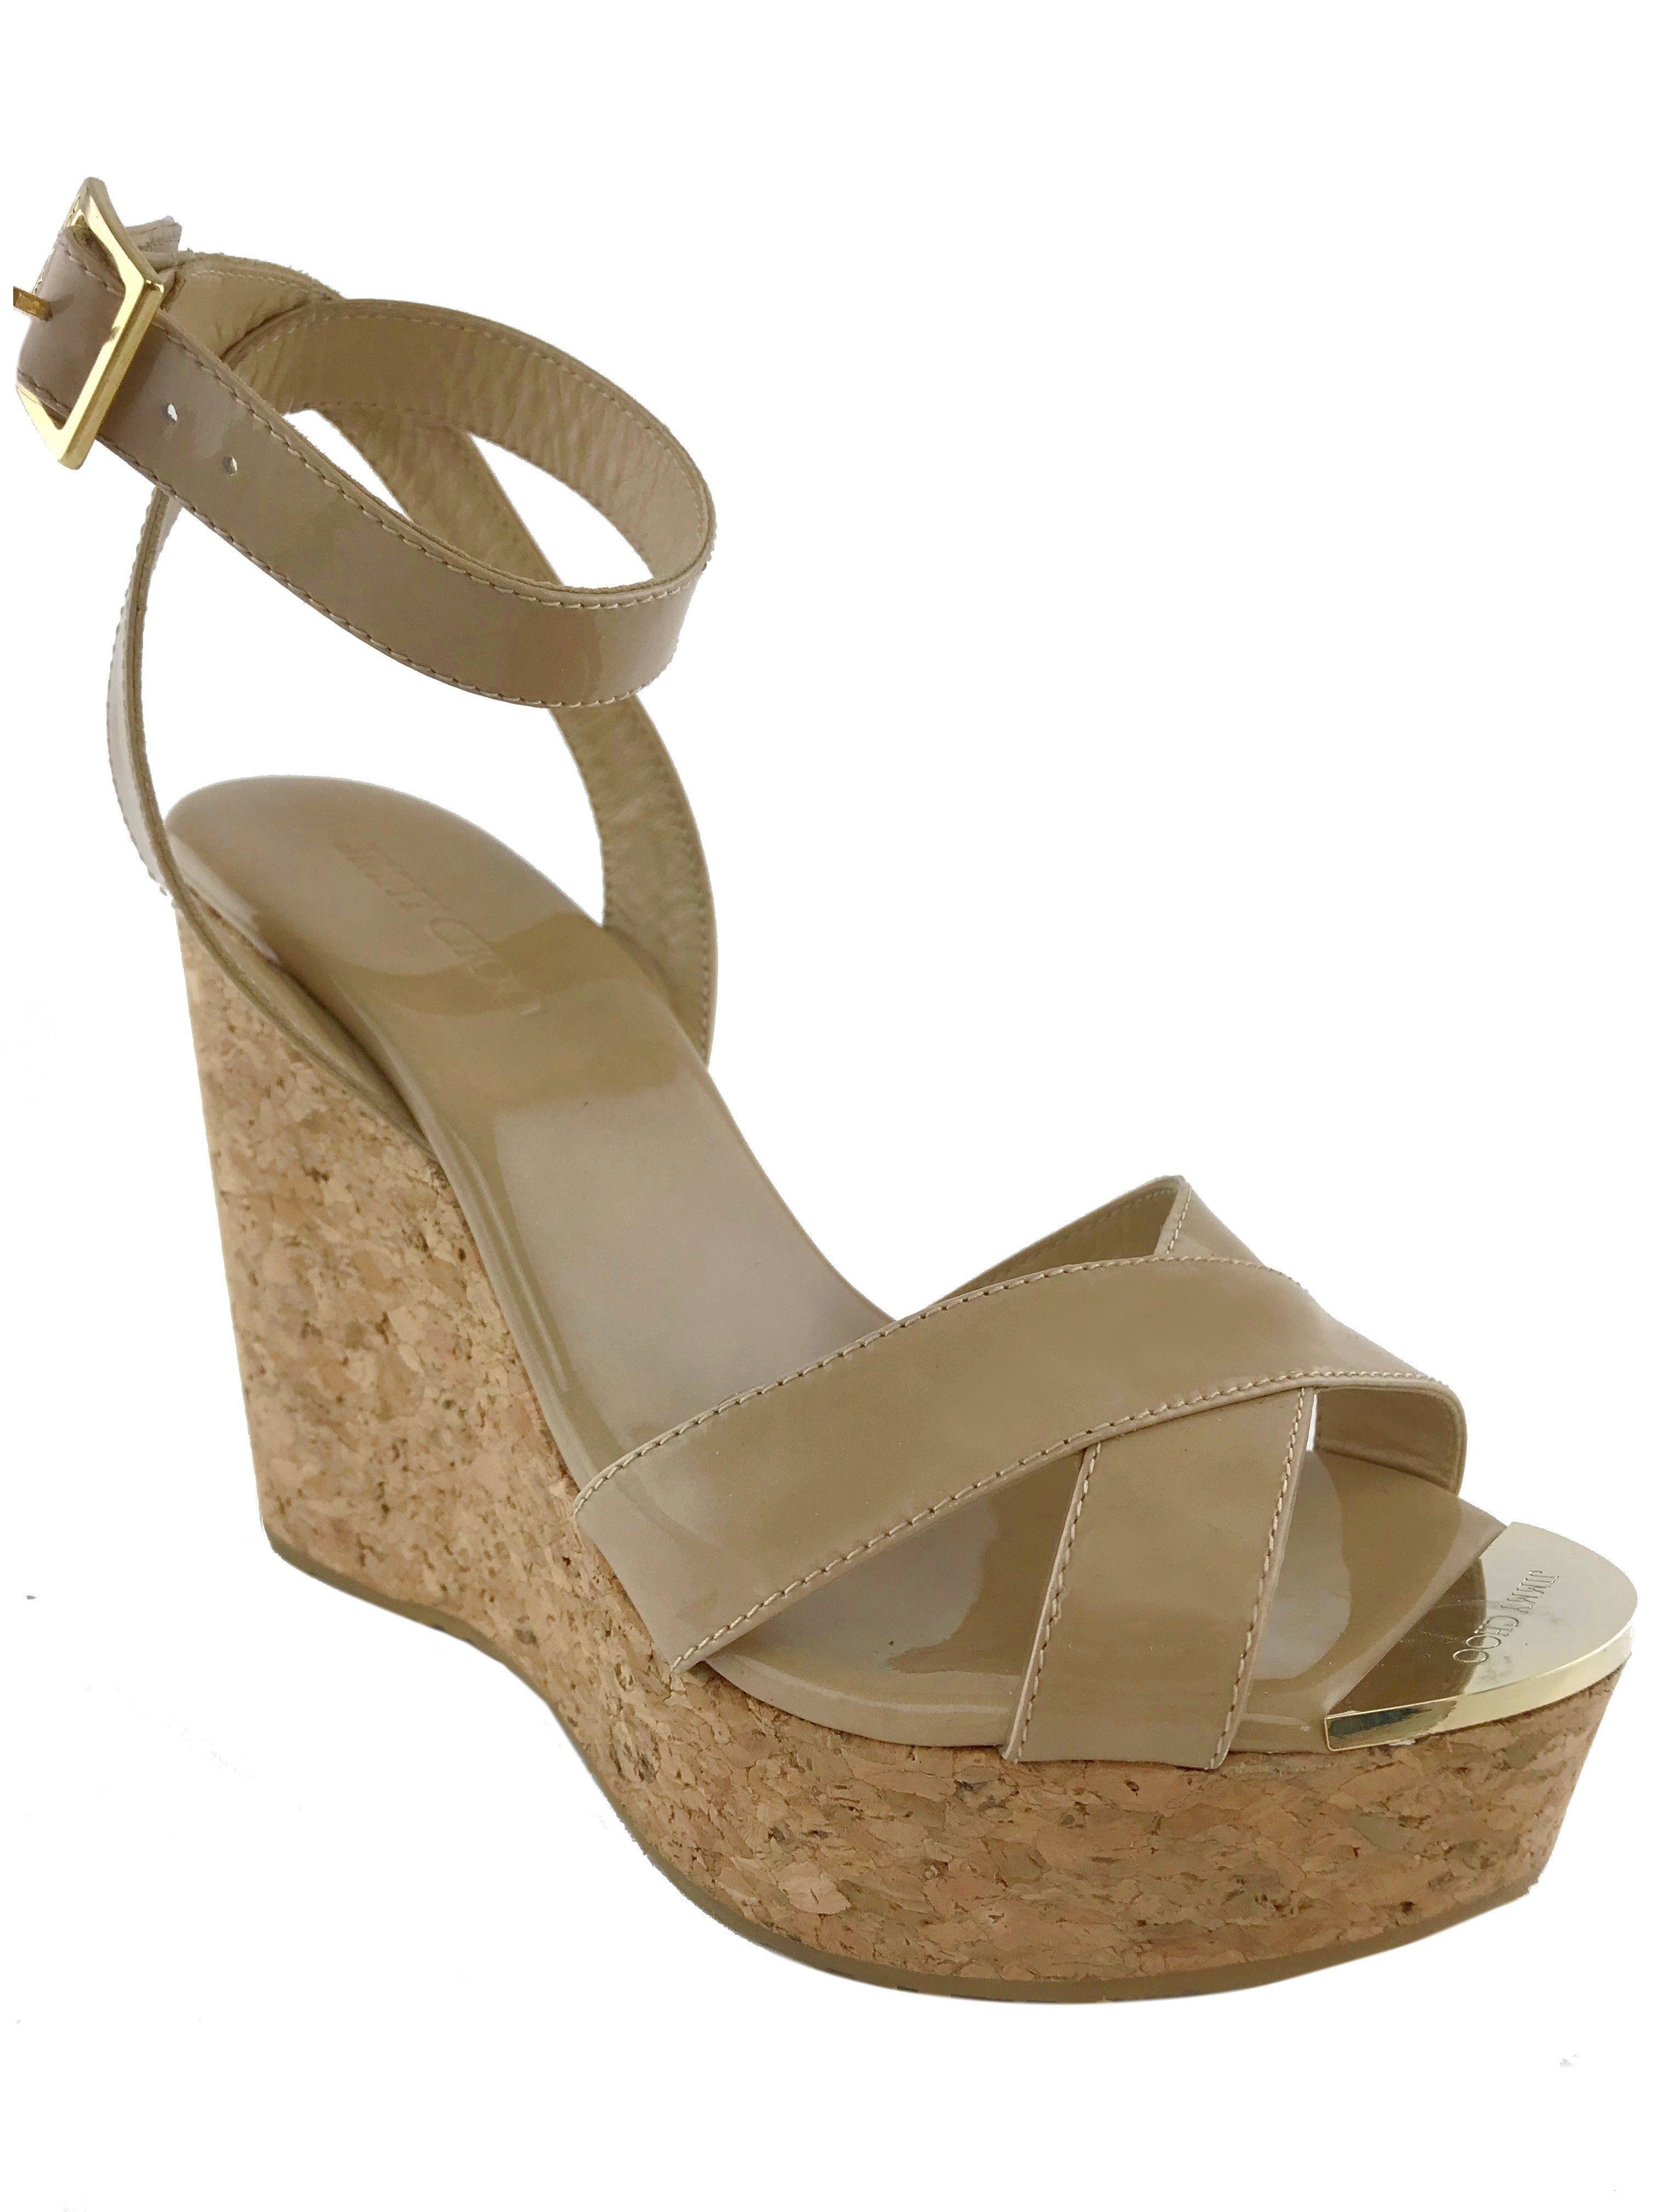 82fd1589e8b Jimmy Choo Papyrus Patent Cork Wedge Size 6.5 in 2019